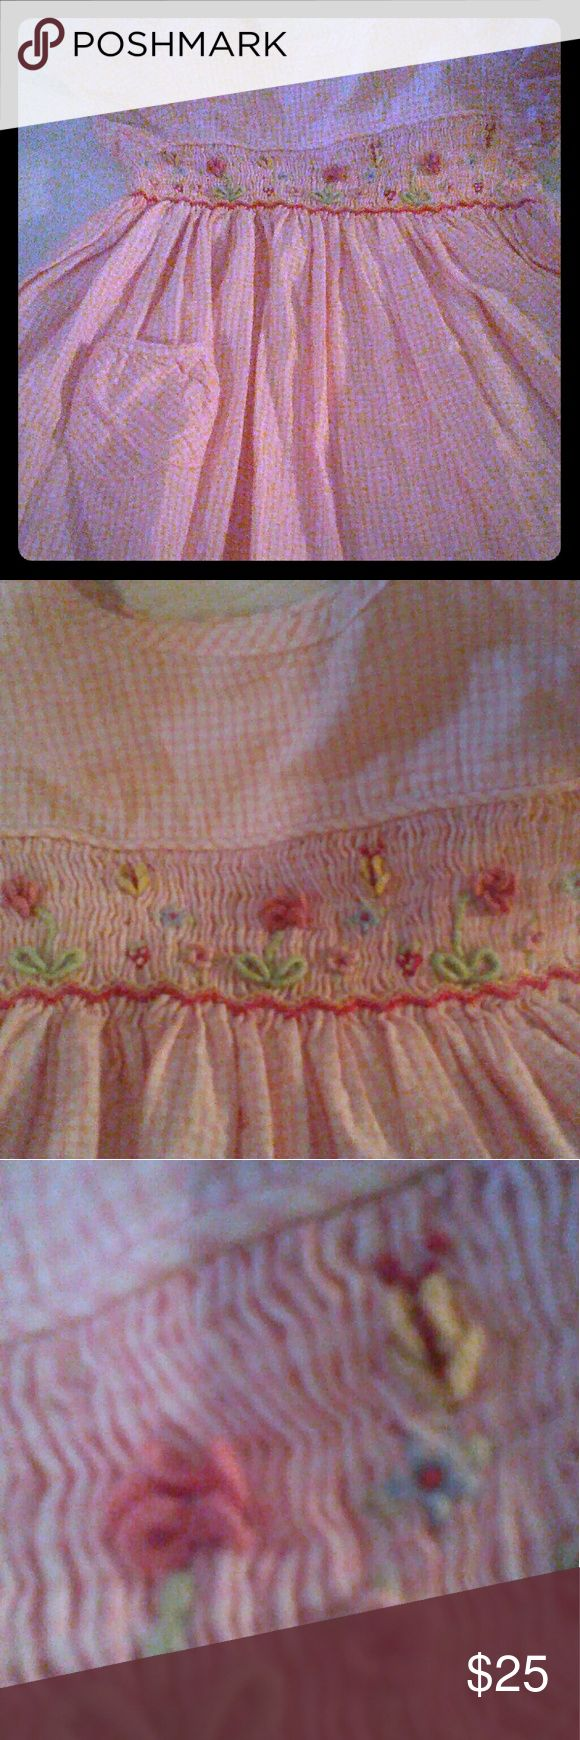 Infants Dress 6/9months by Marks&Spencer Pink check 100%cotton smocked, embroidery dress~precious fits into 1yr, Great fabric and workmanship washed never worn Mark & Spencer Dresses Casual